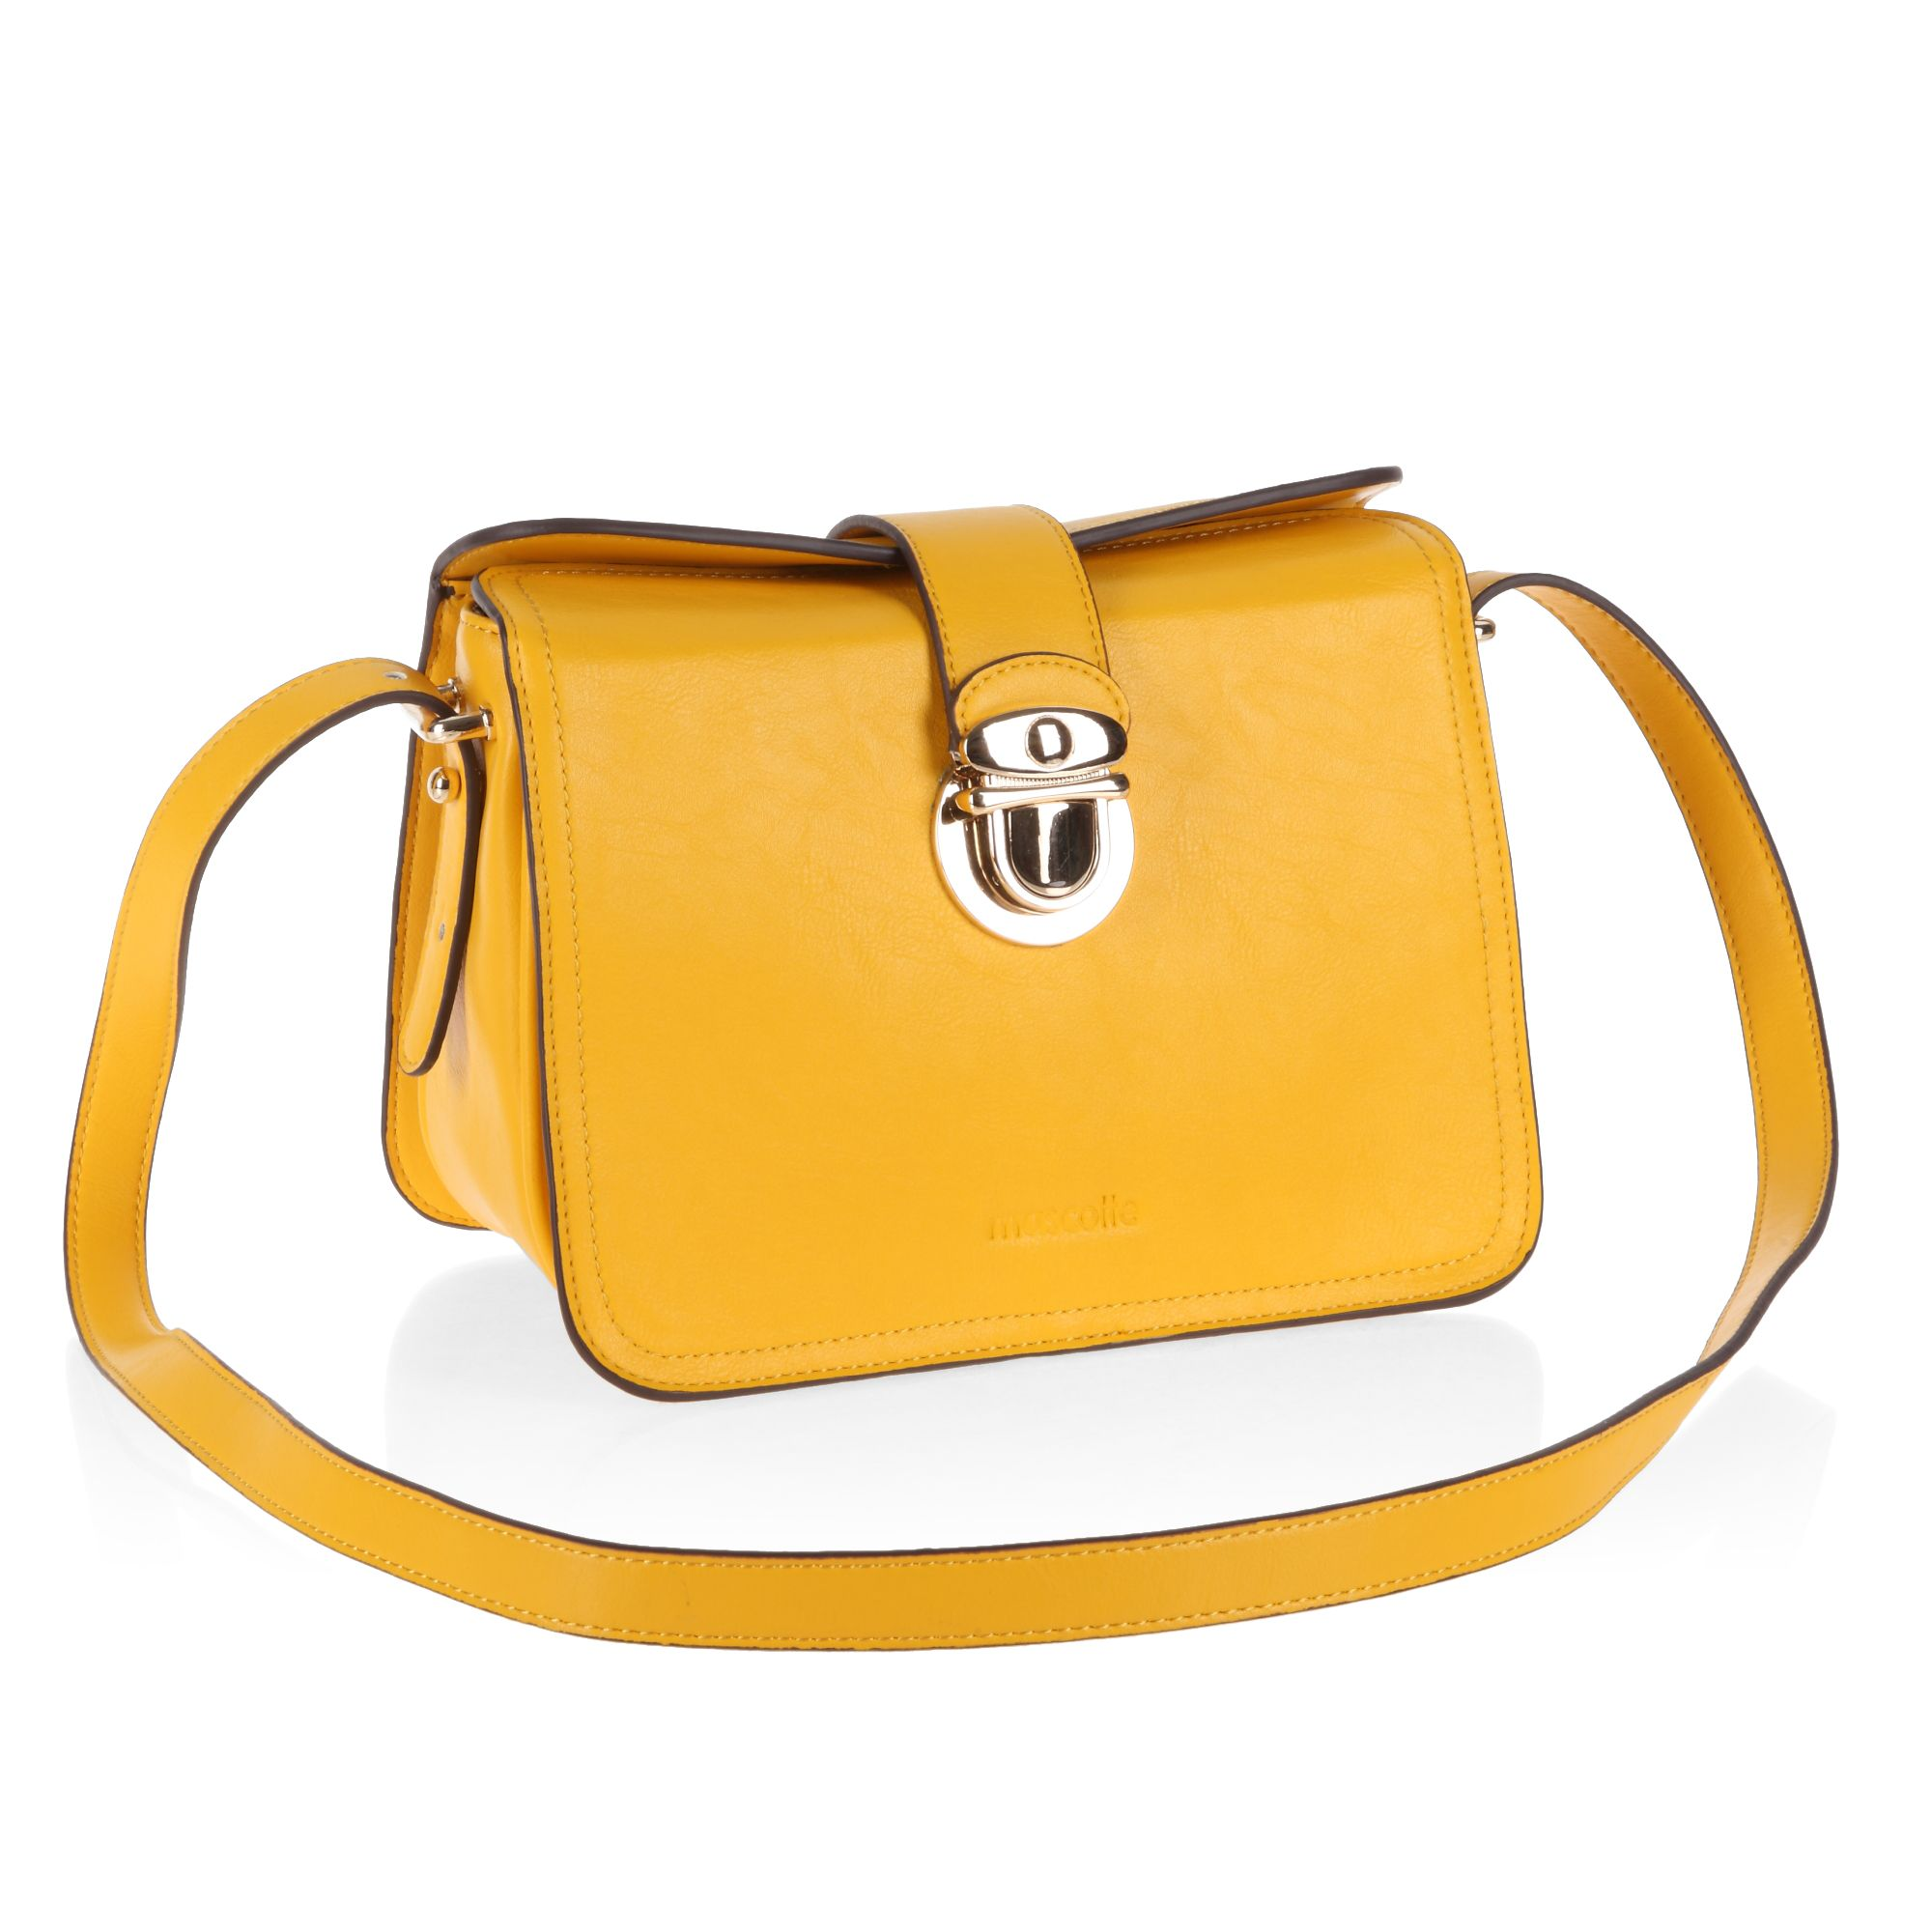 Gold clasp long strap elegant satchel bag